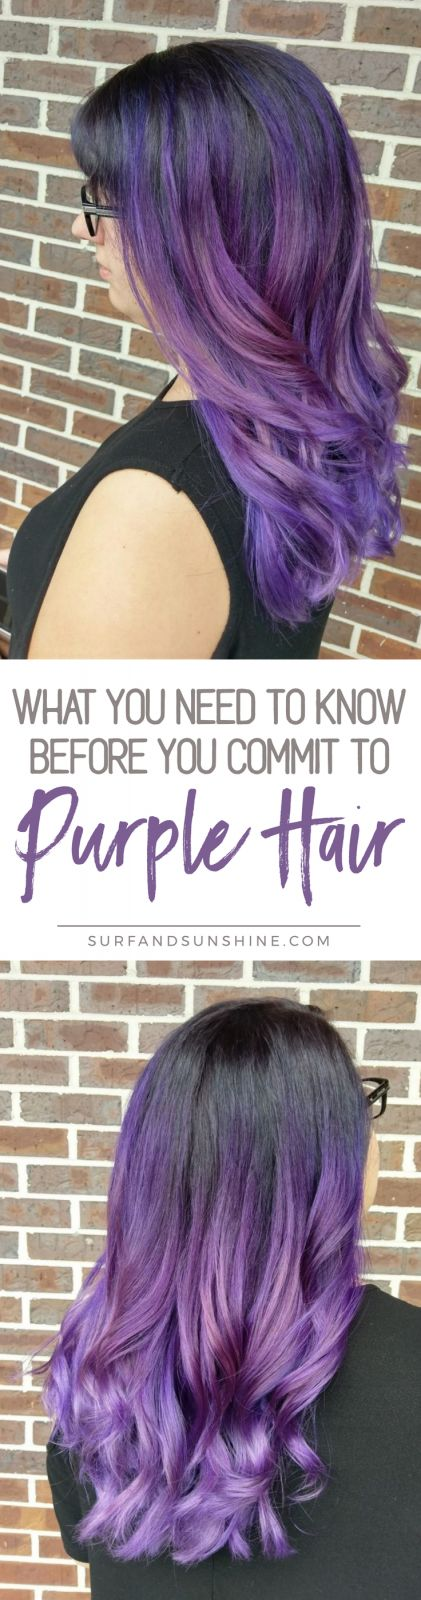 Want to dye your hair purple? Here are important things to know before you do - from what to expect, what they don't tell you and how to maintain your new look via @jeanabeena